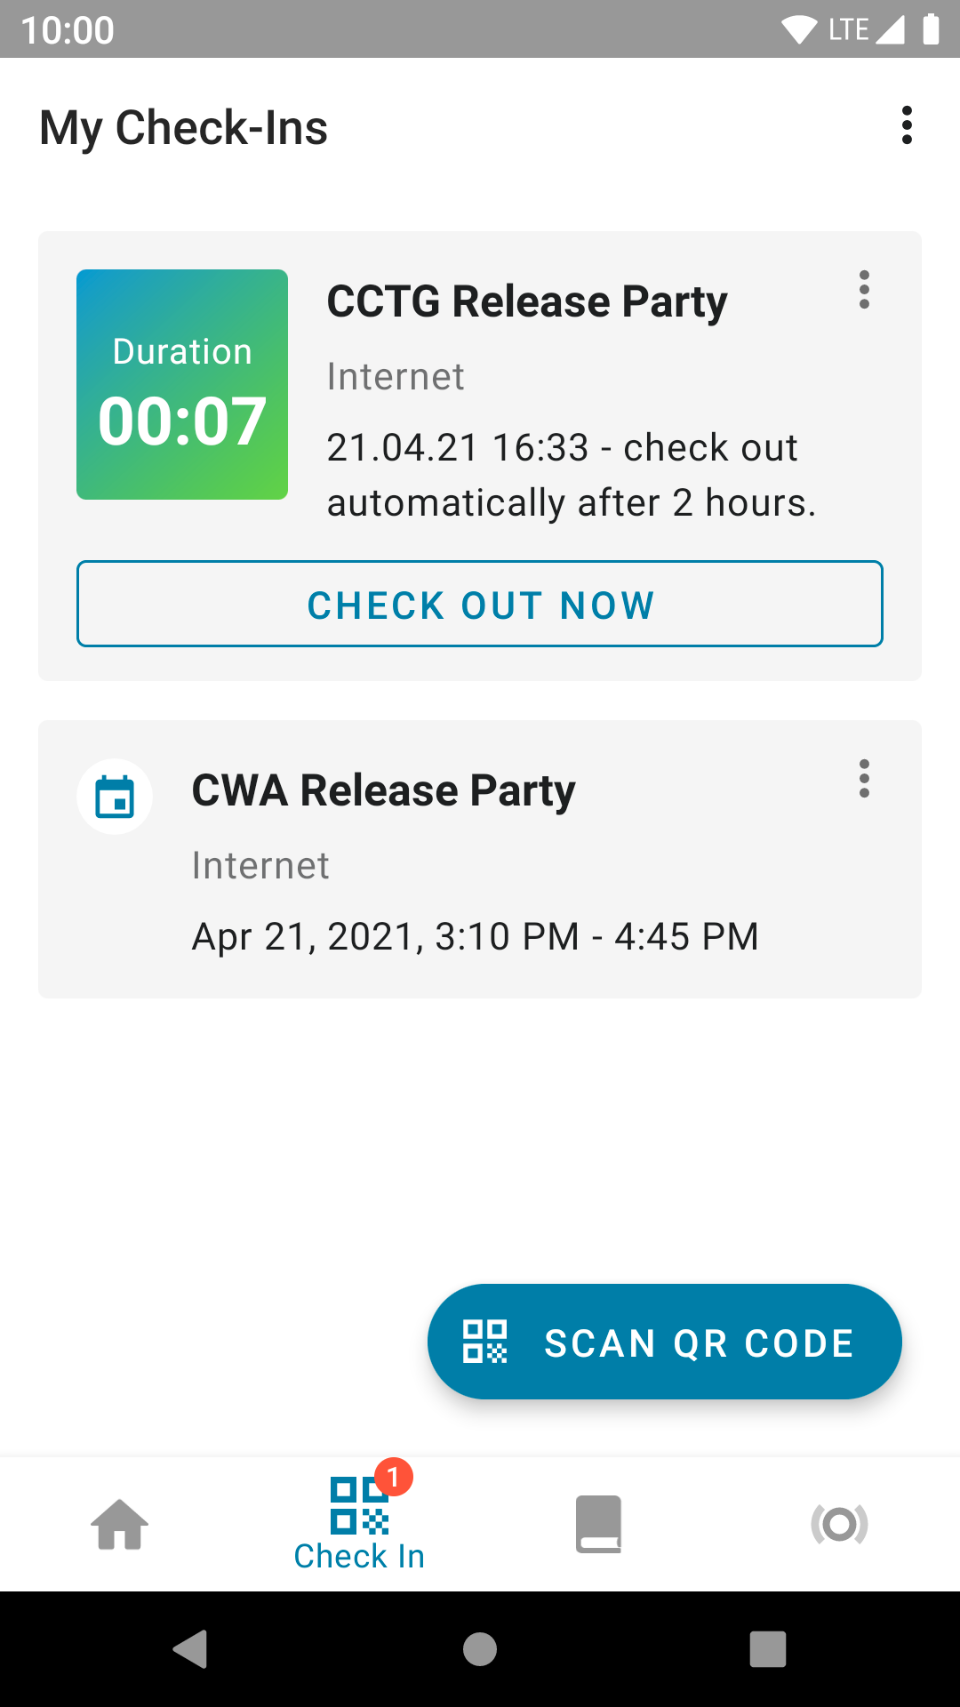 """My Check-Ins screen in CCTG. User has been checked in to """"CCTG Release Party"""" for seven minutes. User had checked in to """"CWA Release Party"""" earlier today."""